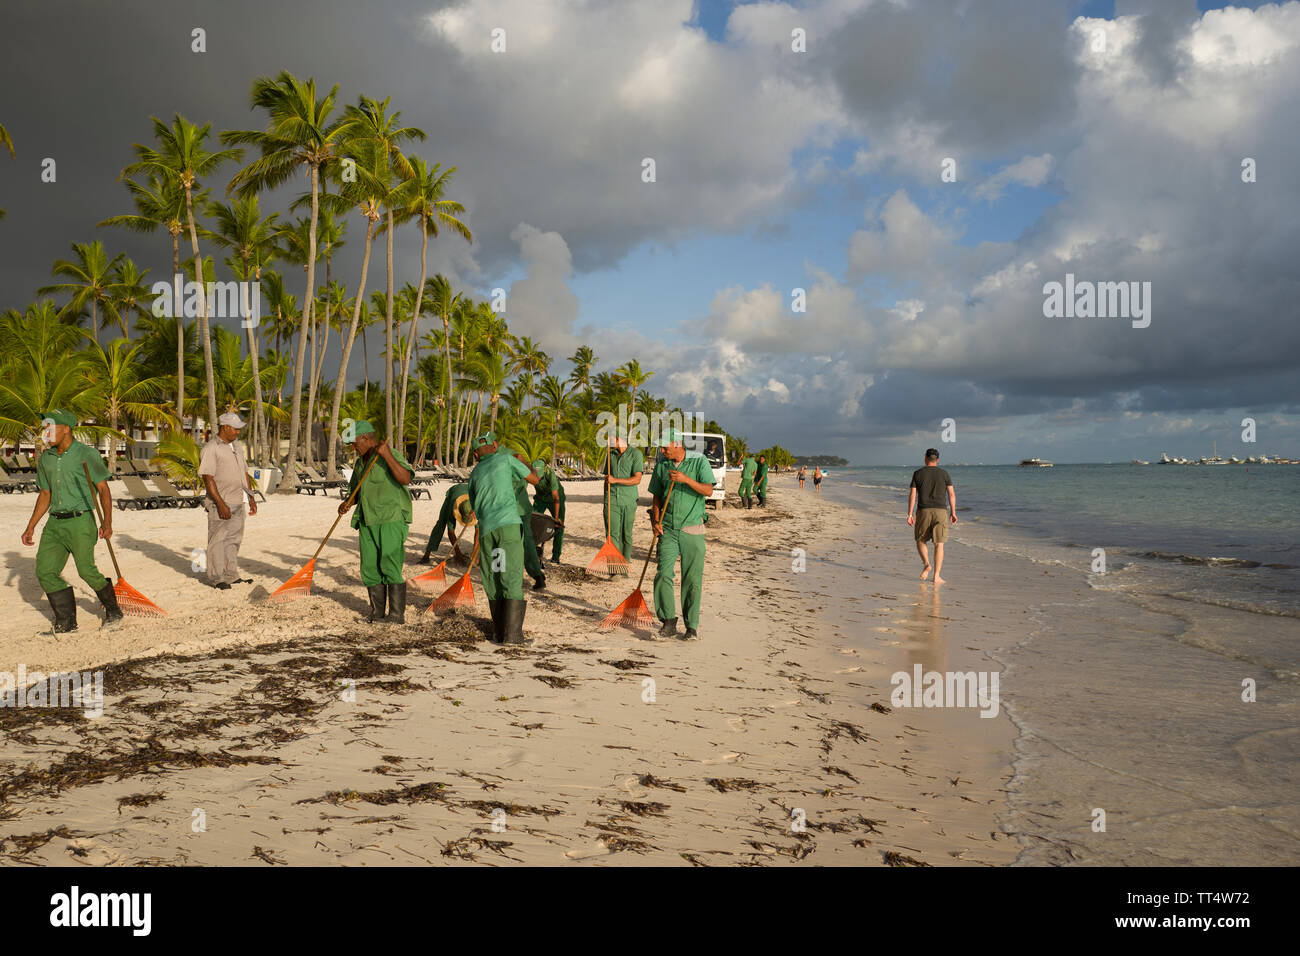 Seaweed Cleaning Stock Photos & Seaweed Cleaning Stock Images - Alamy